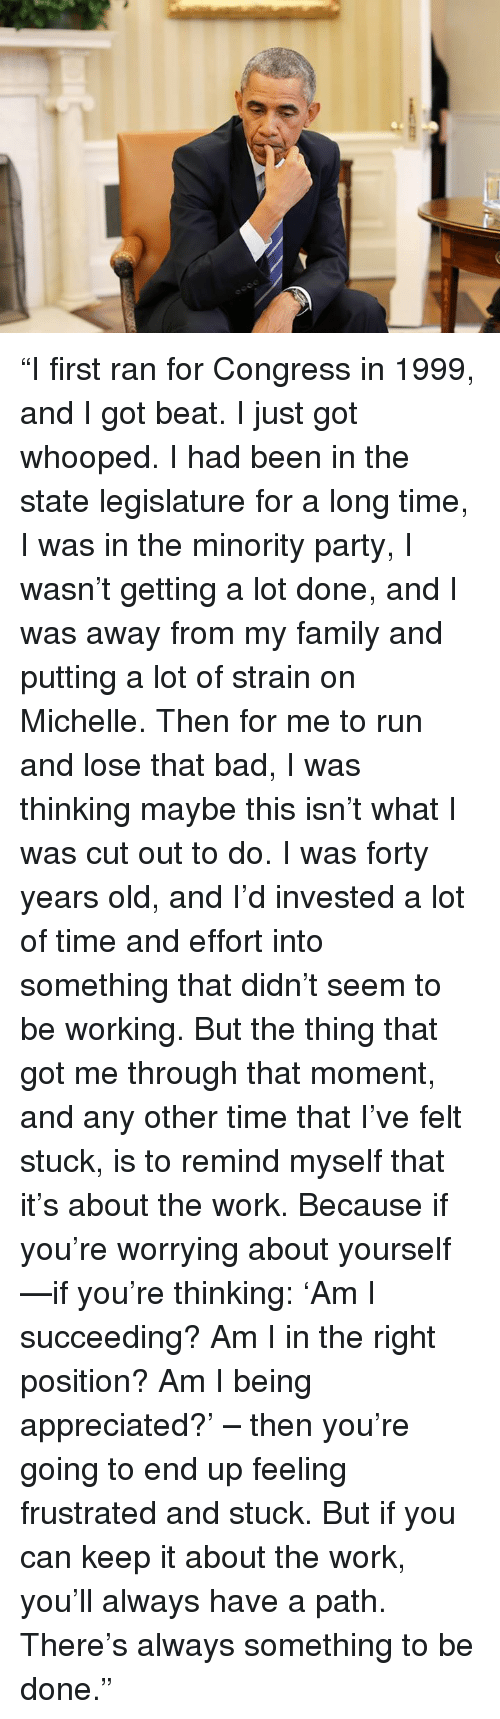 "Worry About Yourself: ""I first ran for Congress in 1999, and I got beat. I just got whooped. I had been in the state legislature for a long time, I was in the minority party, I wasn't getting a lot done, and I was away from my family and putting a lot of strain on Michelle. Then for me to run and lose that bad, I was thinking maybe this isn't what I was cut out to do. I was forty years old, and I'd invested a lot of time and effort into something that didn't seem to be working. But the thing that got me through that moment, and any other time that I've felt stuck, is to remind myself that it's about the work. Because if you're worrying about yourself—if you're thinking: 'Am I succeeding? Am I in the right position? Am I being appreciated?' – then you're going to end up feeling frustrated and stuck. But if you can keep it about the work, you'll always have a path. There's always something to be done."""